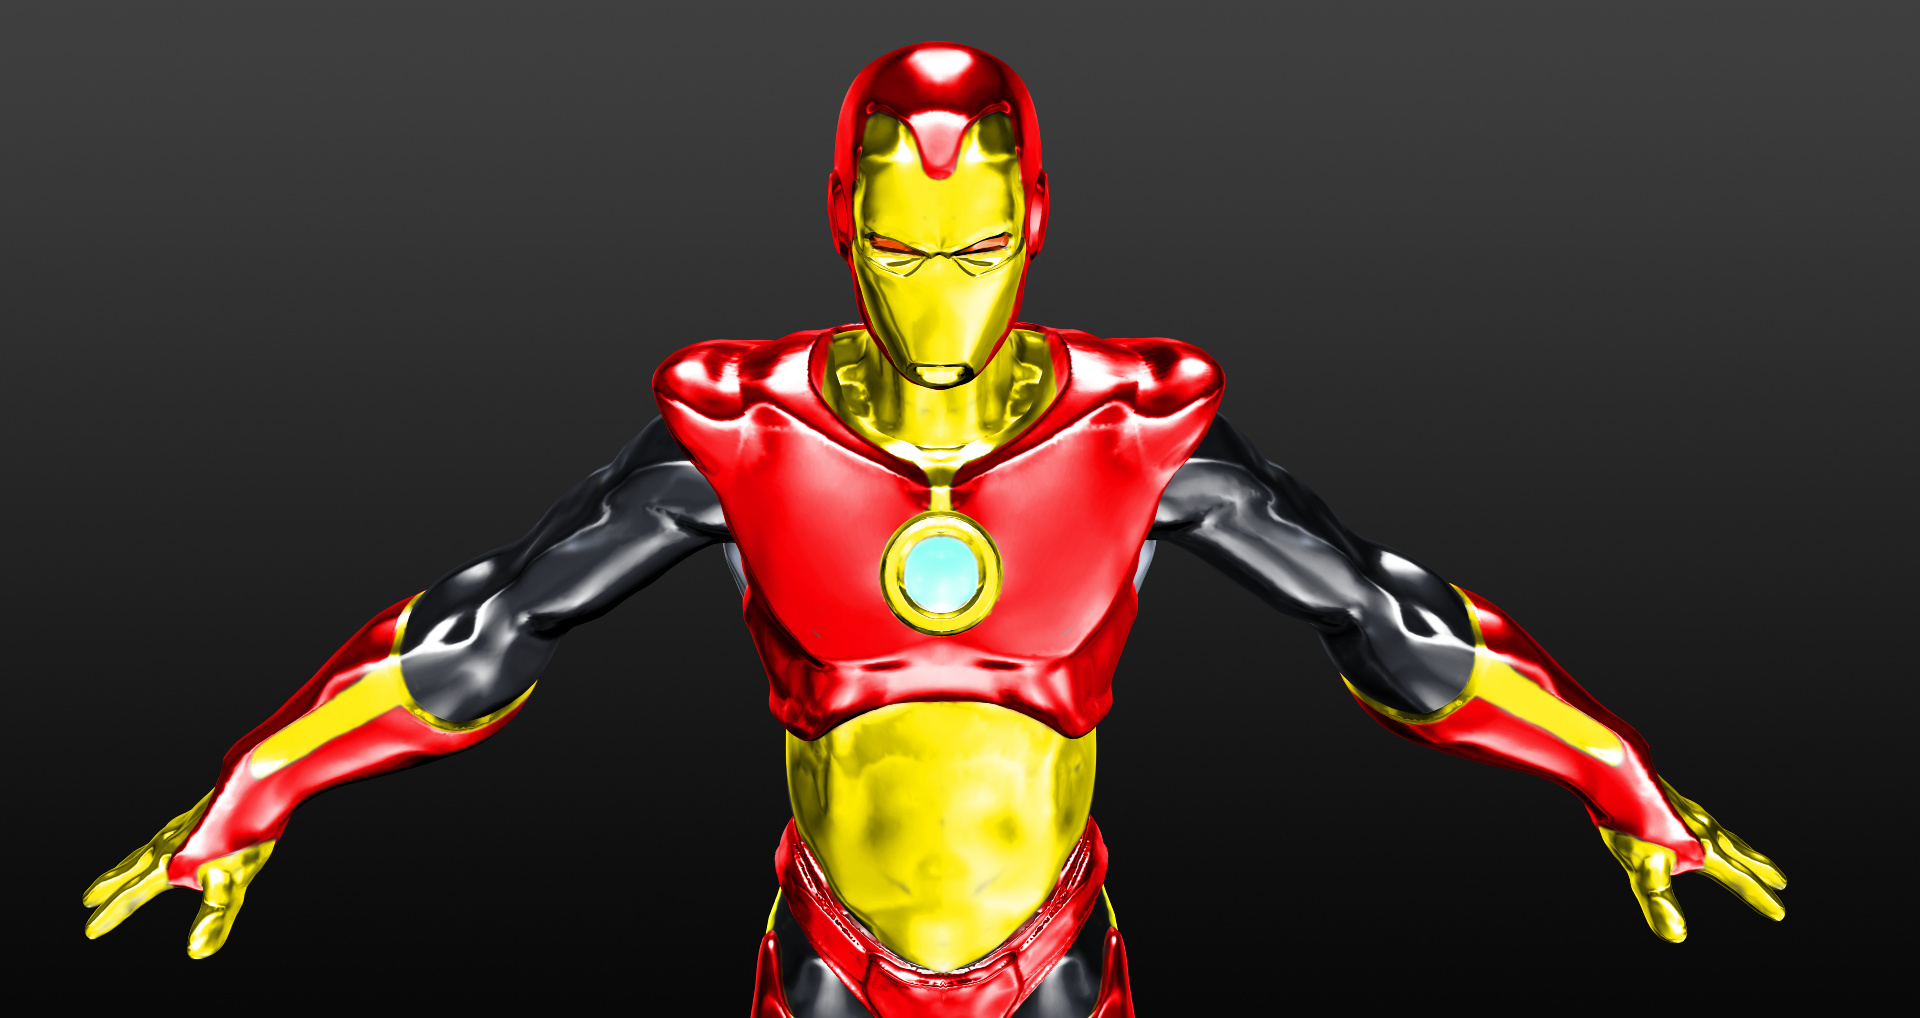 Ironman_Prova24_color3_front_big02